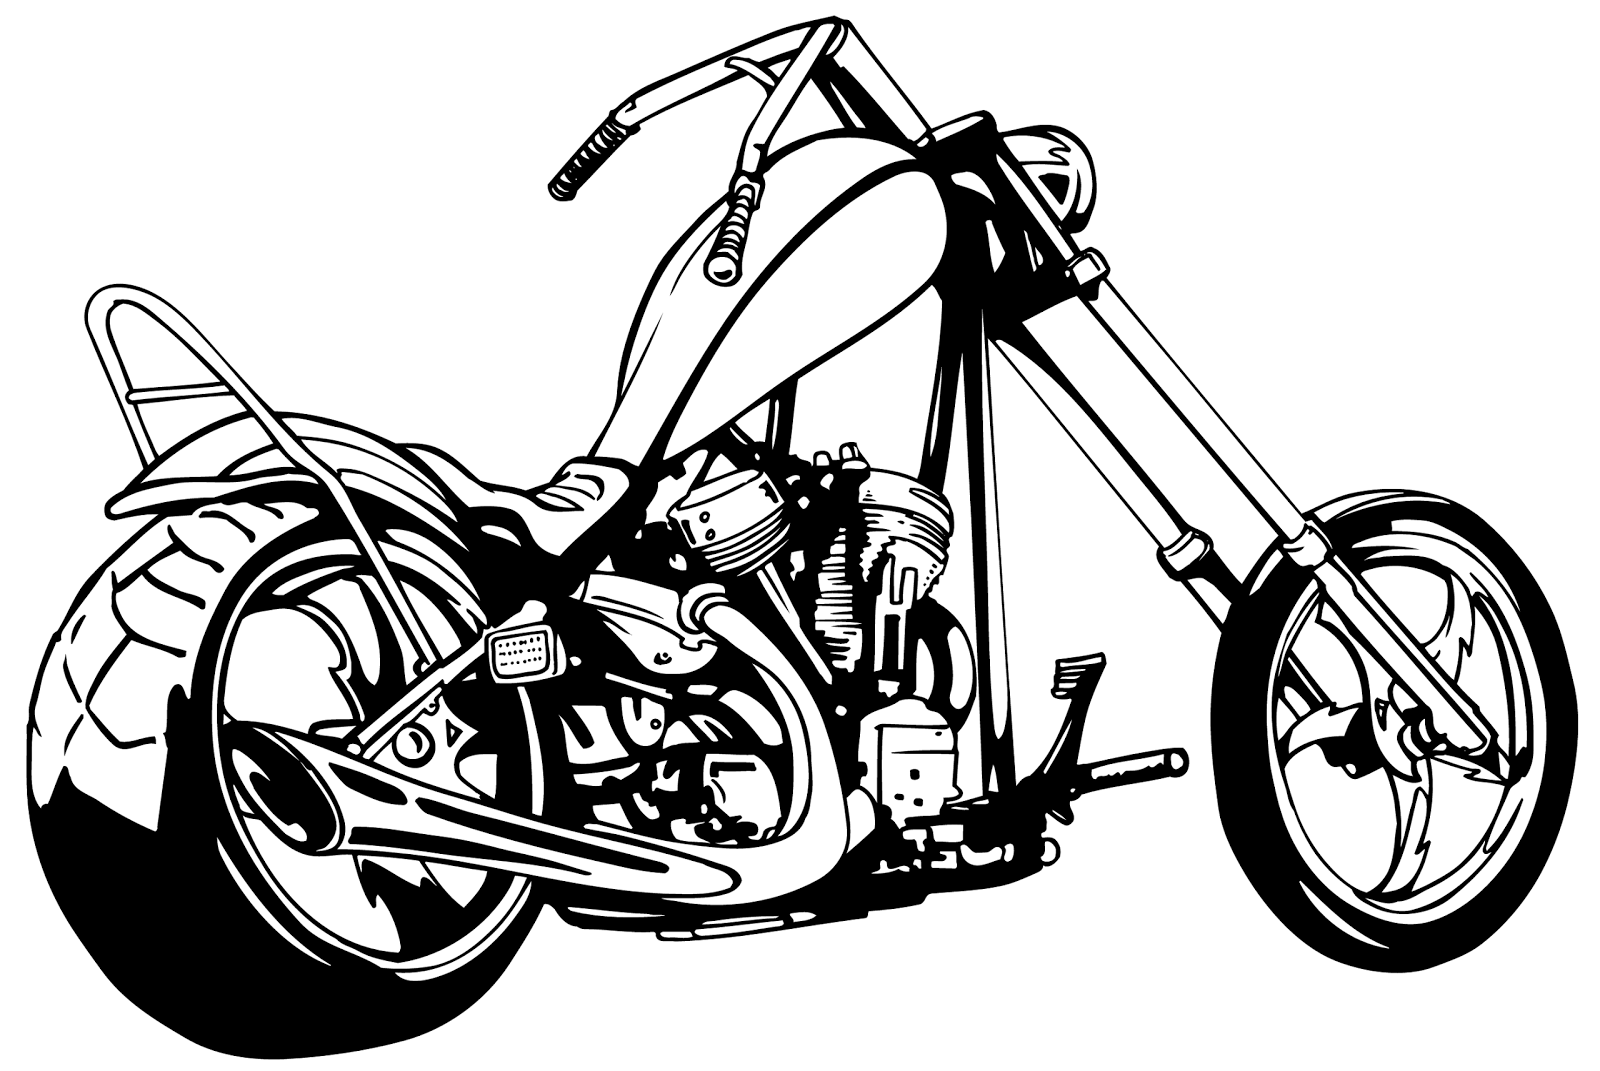 Harley davidson harley motorcycle clipart free clipart image.